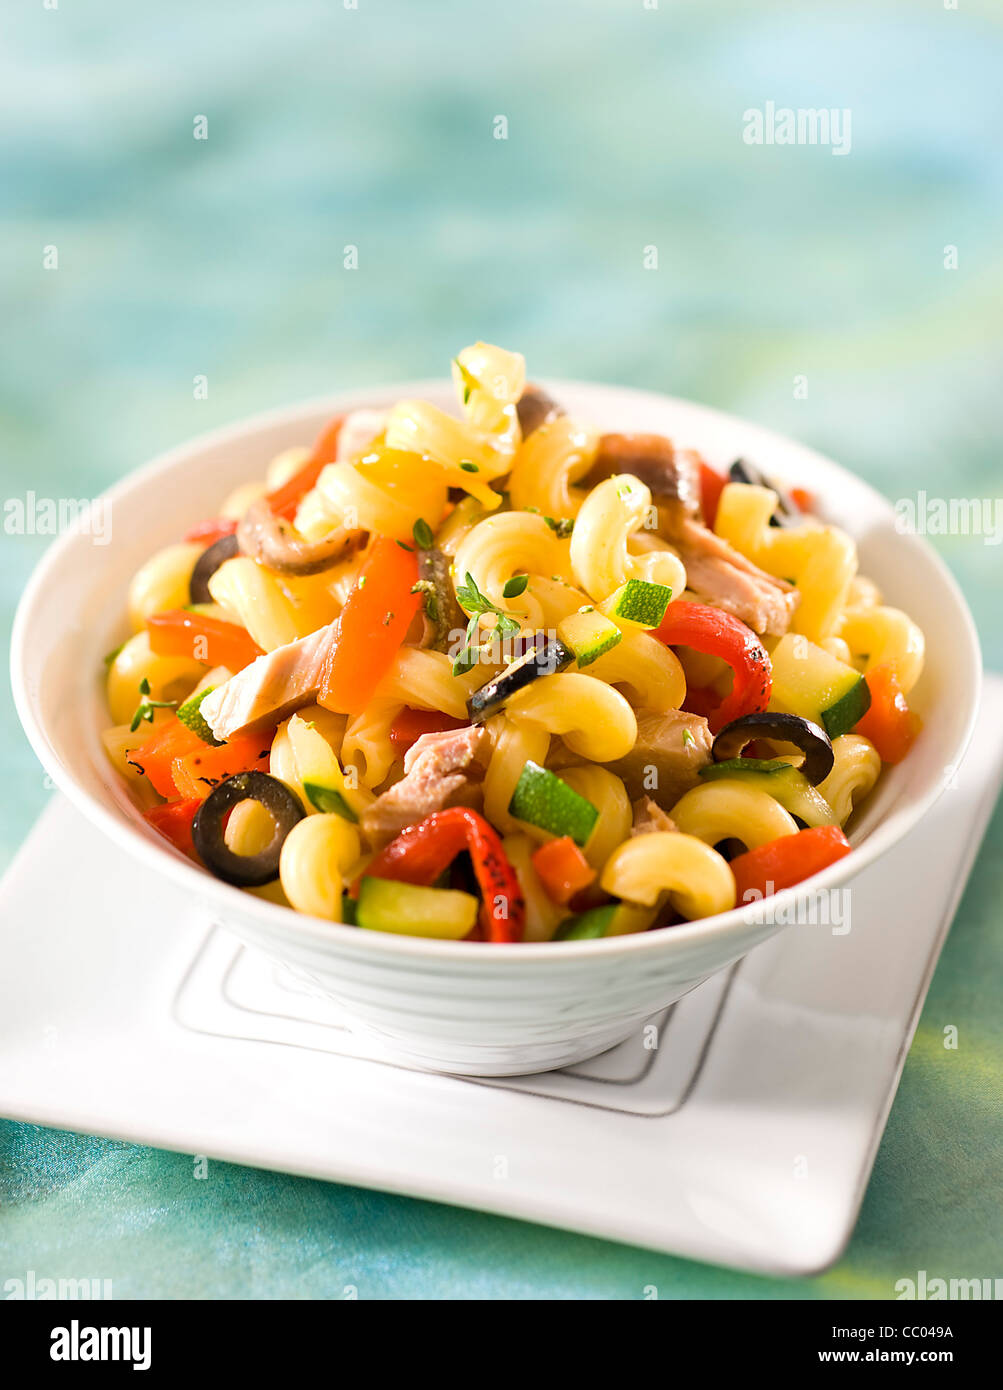 Pasta with Tuna and Thyme Salad - Stock Image